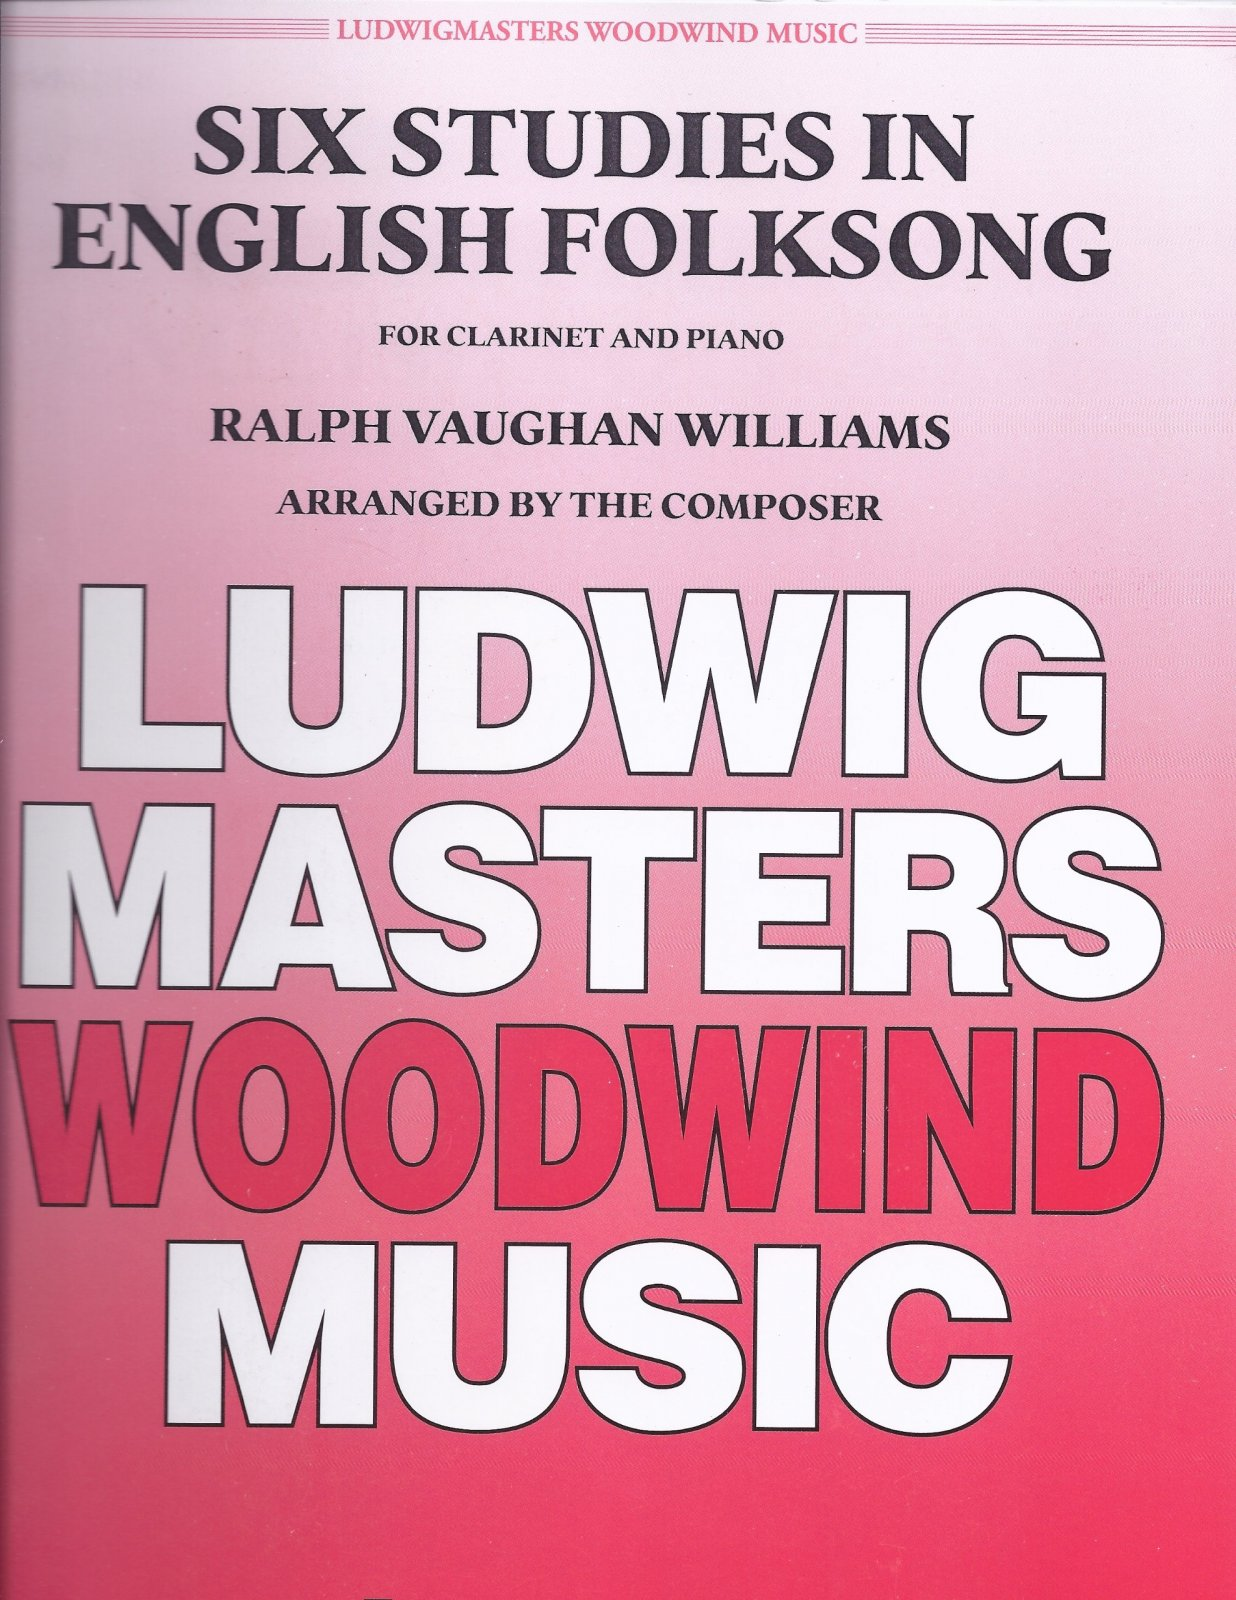 Vaughan Williams, Ralph: Six Studies in English Folksong for Clarinet & Piano